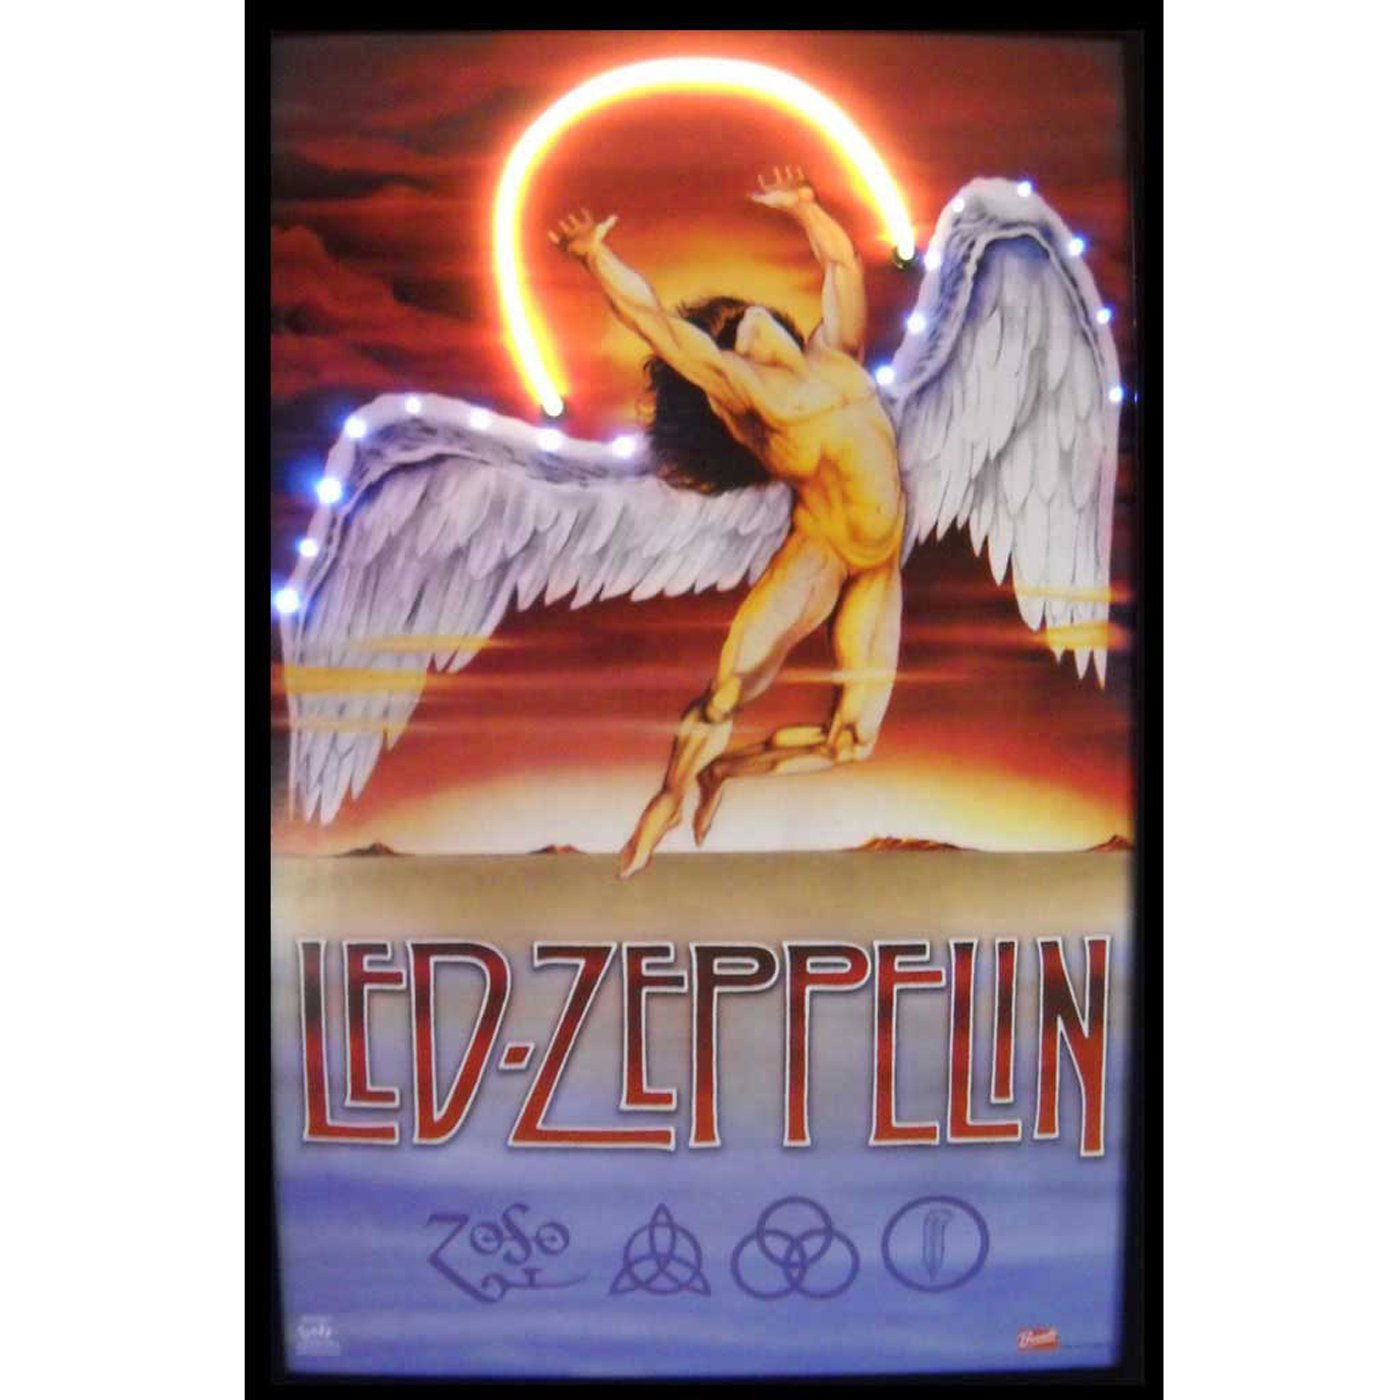 Led Zeppelin Neon LED Art Picture by Neonetics